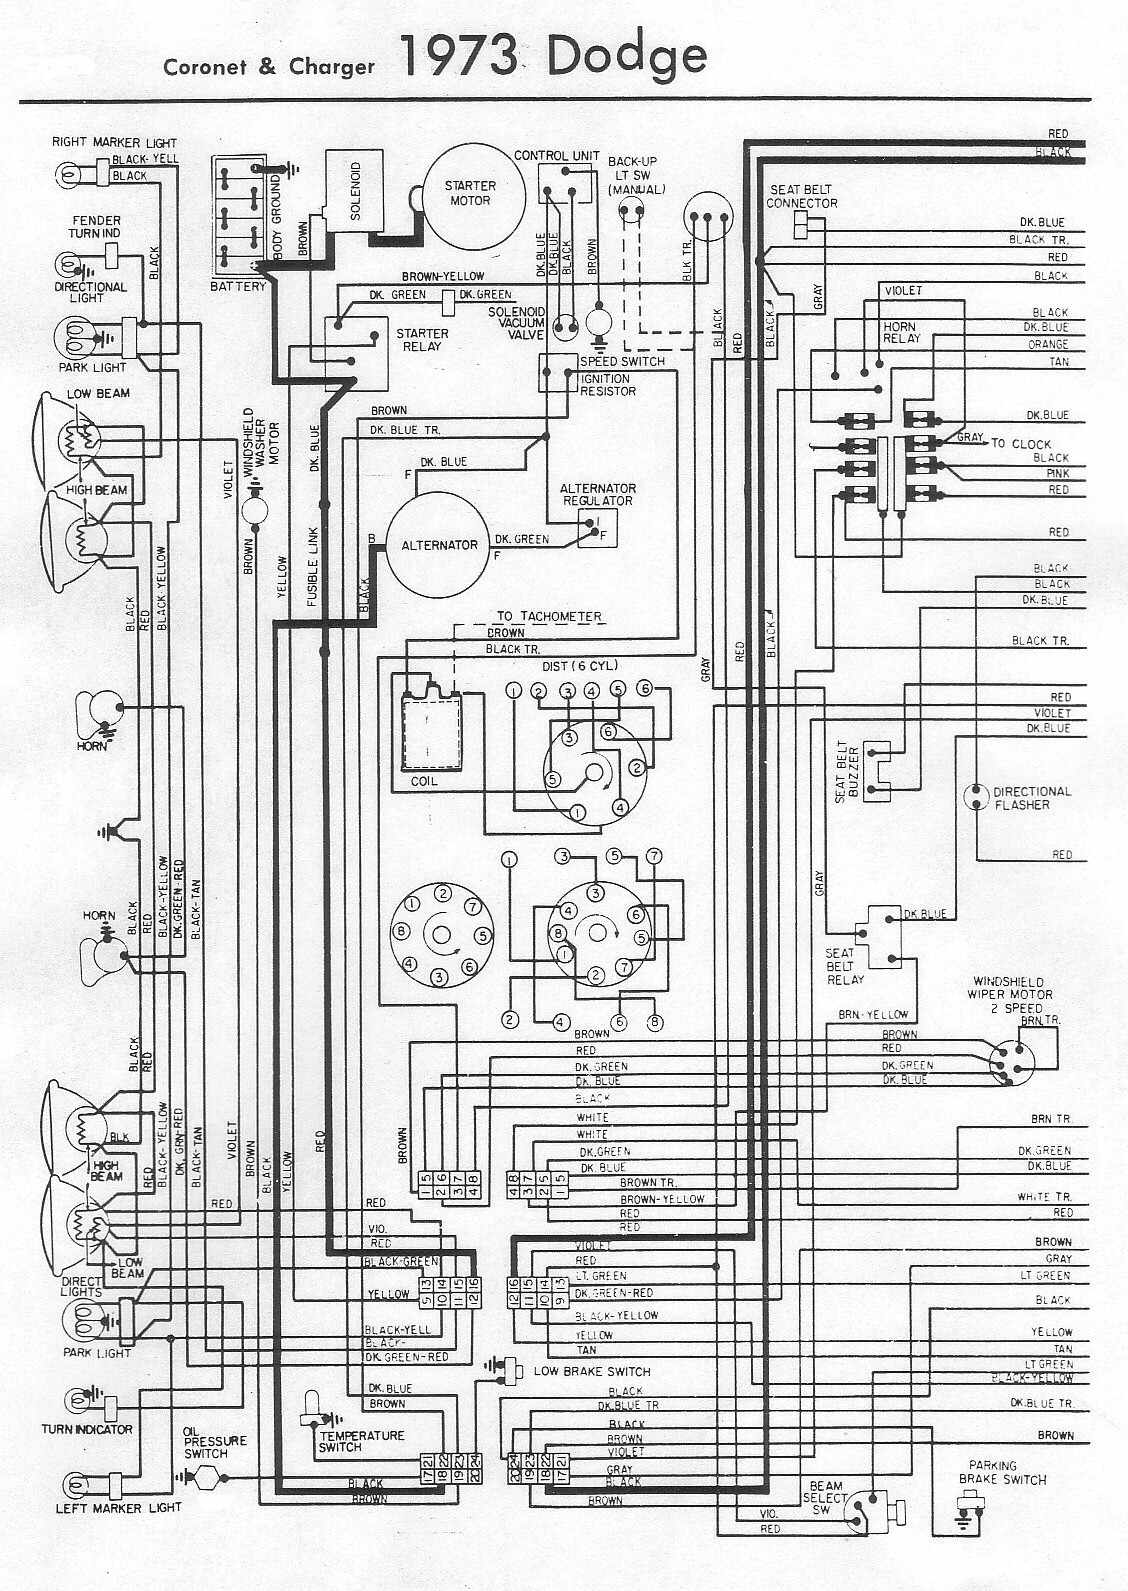 1973 Dodge Challenger Fuse Box Trusted Wiring Diagram 1970 Charger For 08 Caliber